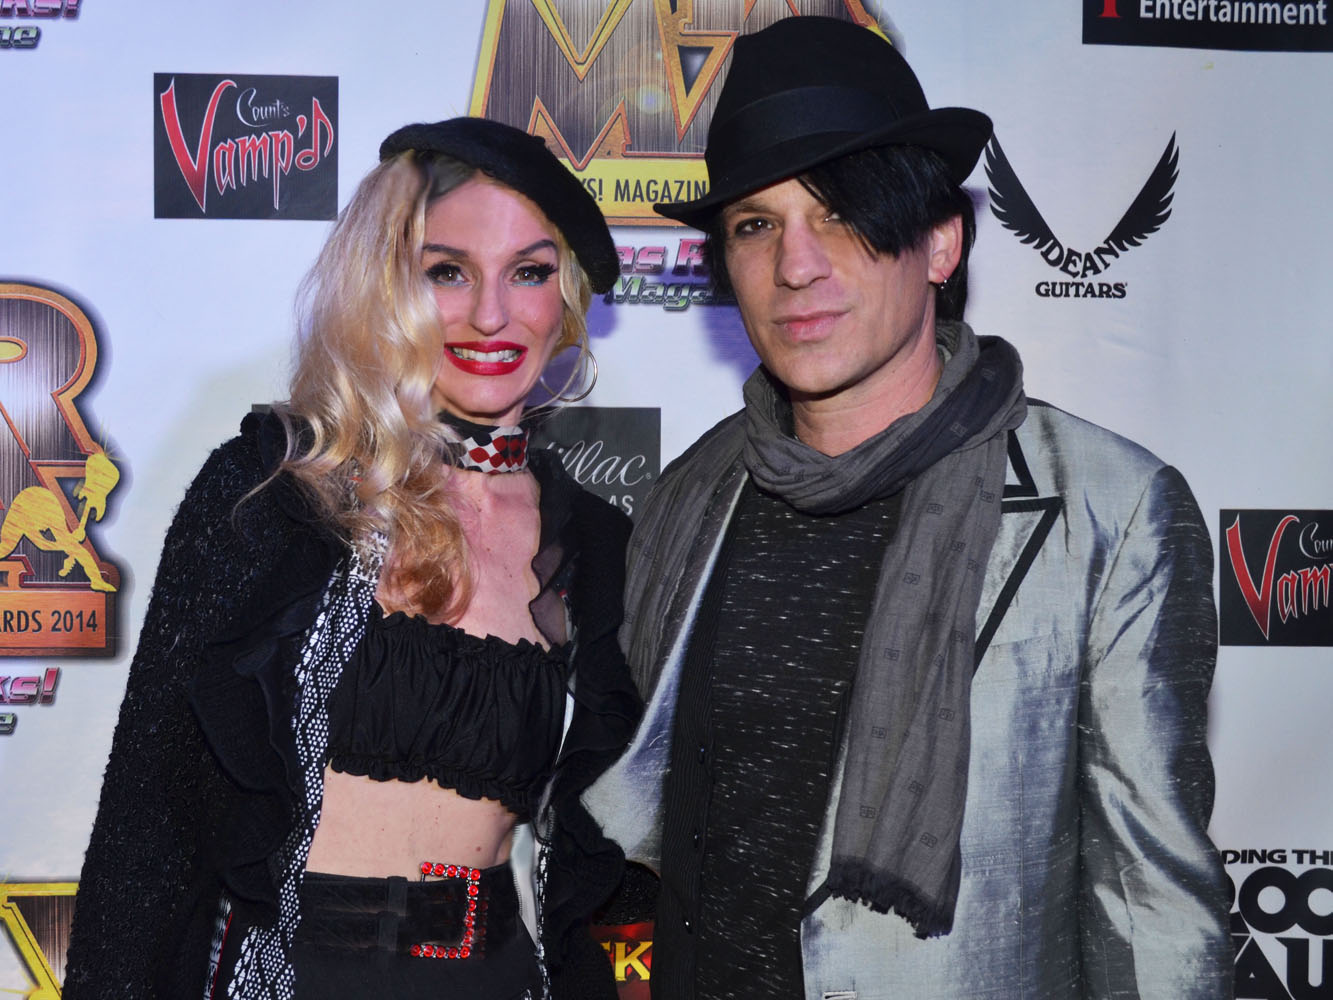 Alicia Perrone Victor James Fans Of Jimmy Century - Vegas Rocks Magazine Music Awards 2014 photo credit Stephen Thorburn 63732 Edit